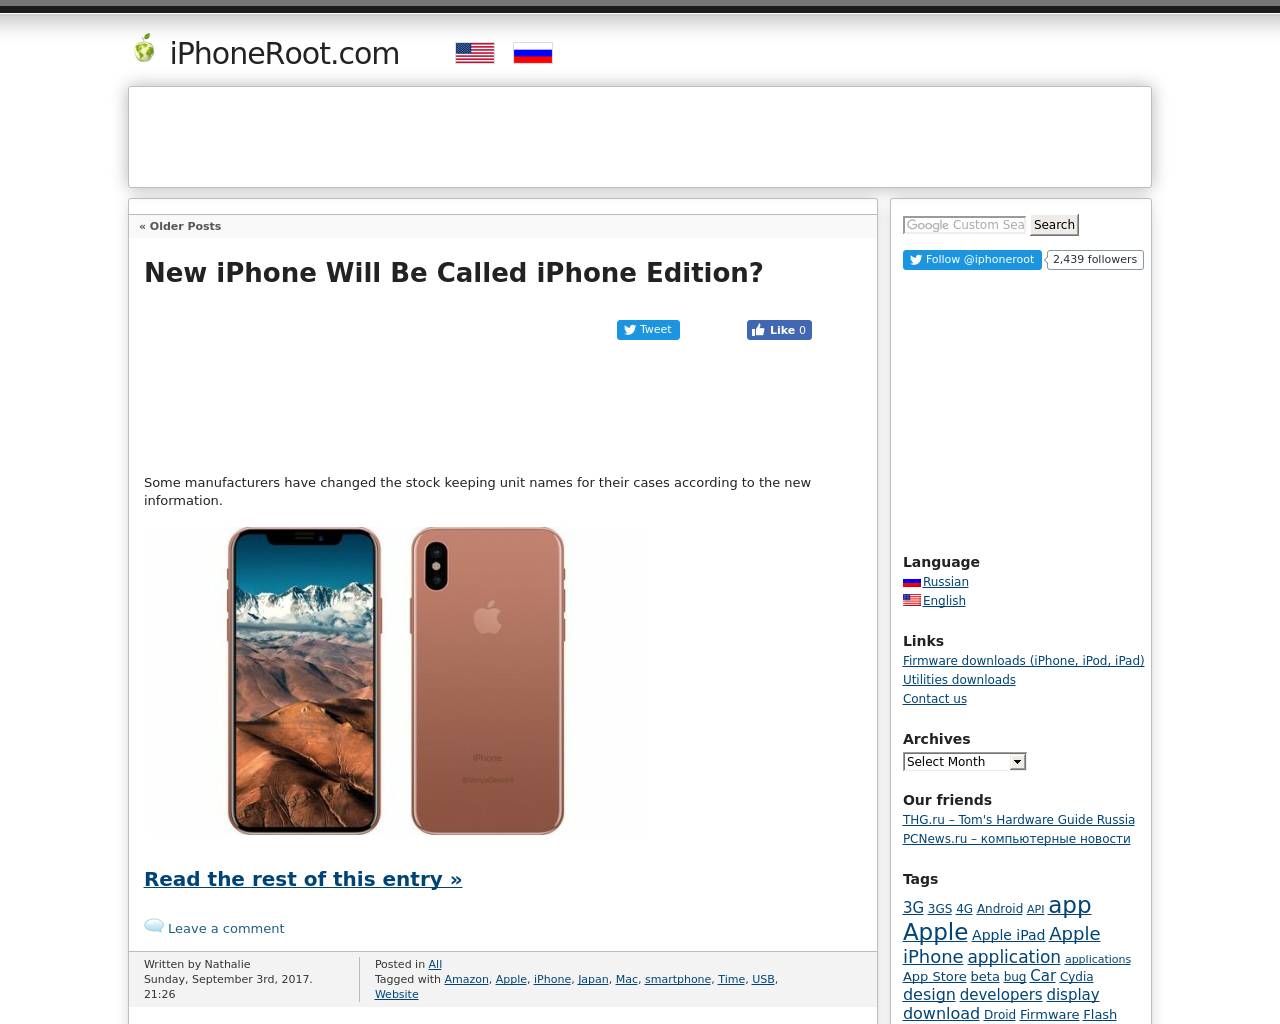 IPhoneRoot.com-Advertising-Reviews-Pricing